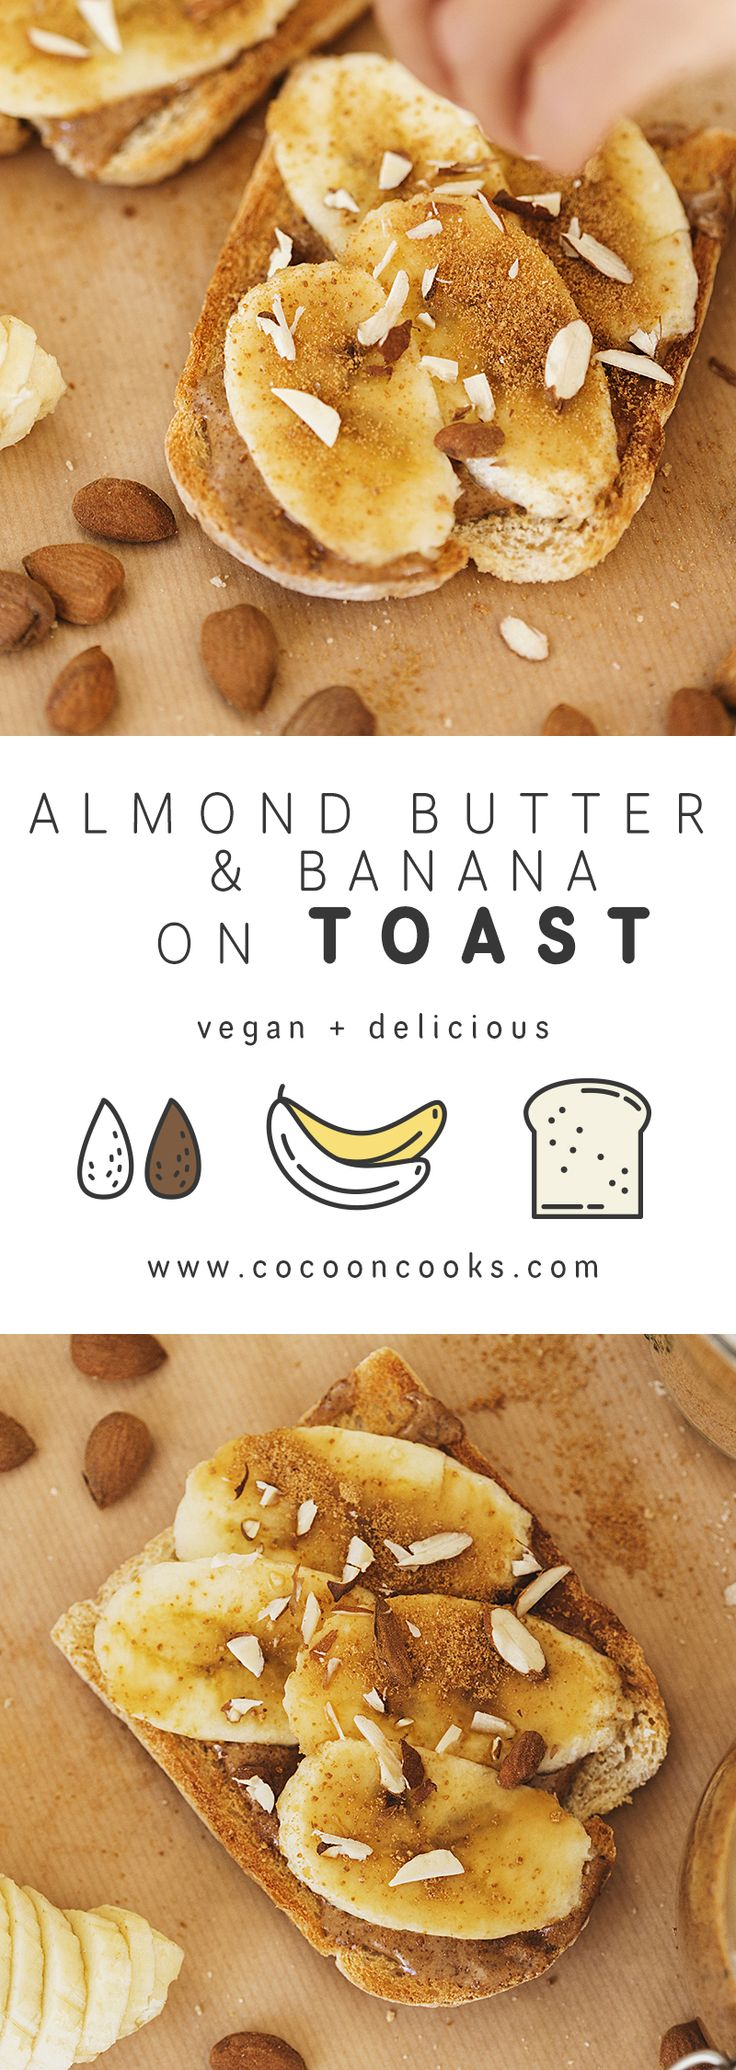 Indulge your sweet tooth with these delicious and healthy toasts! This naturally sweetened snack is the perfect pick-me-up for that mid-afternoon slump. #healthy #organic #vegan #snack